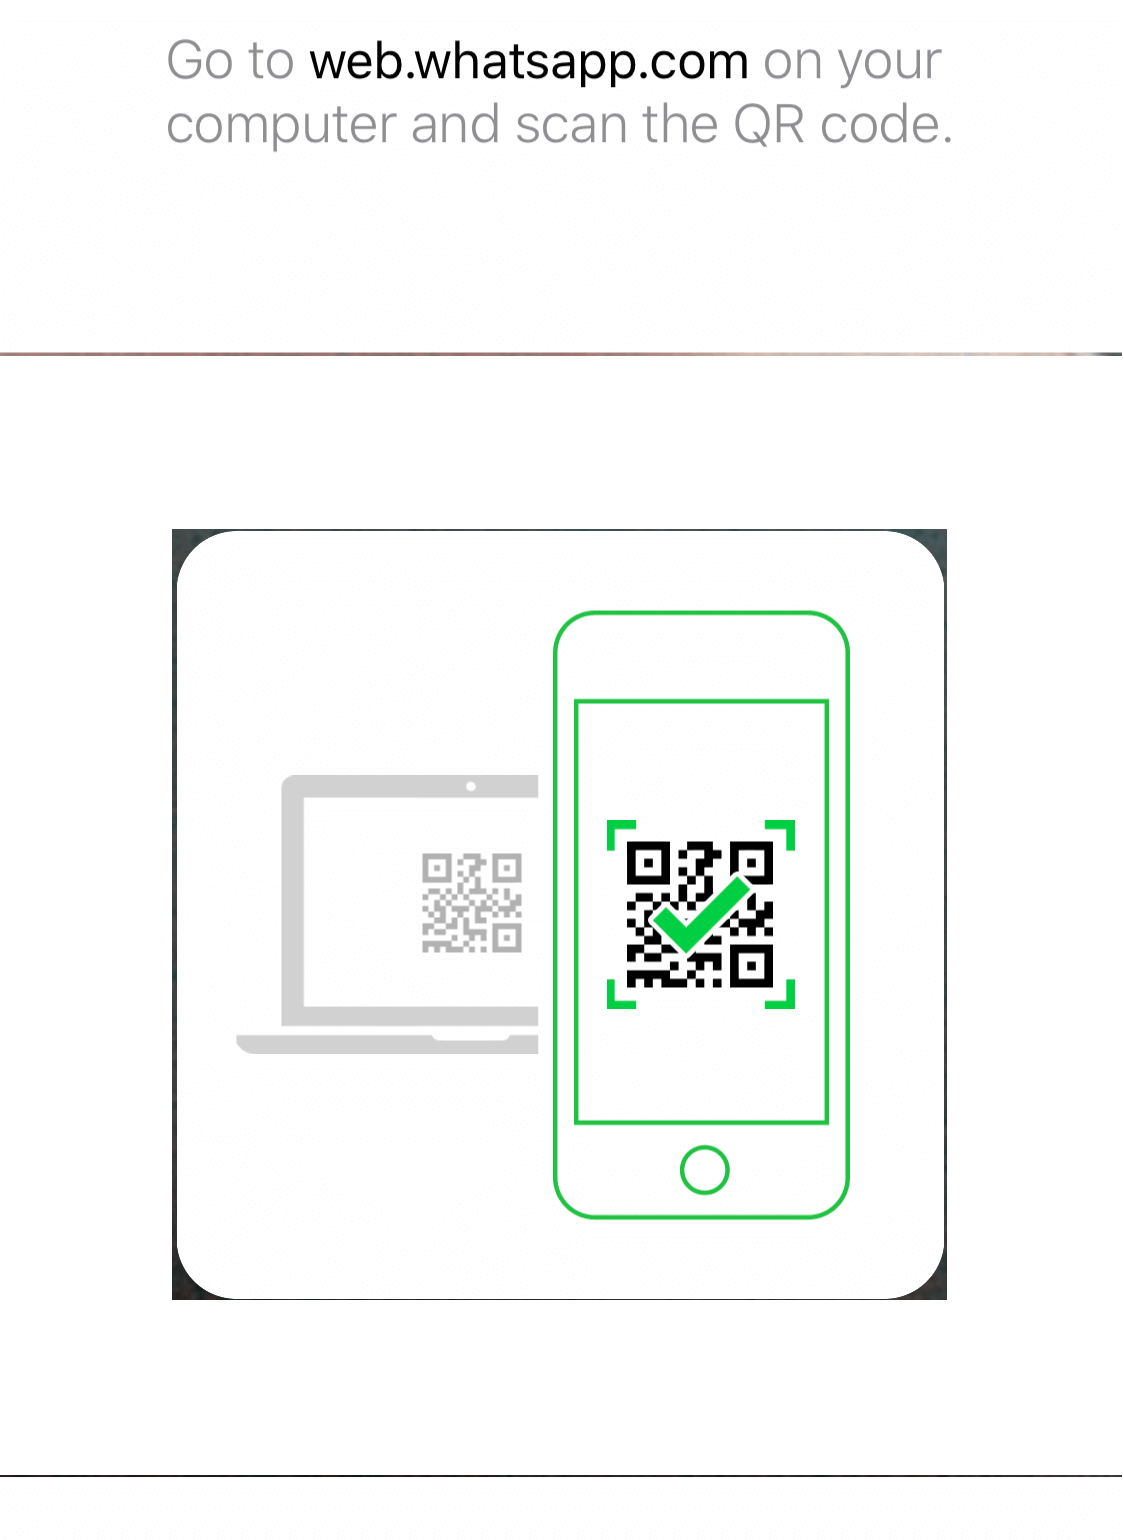 Scan the QR Code using your phone and WhatsApp Web will open up